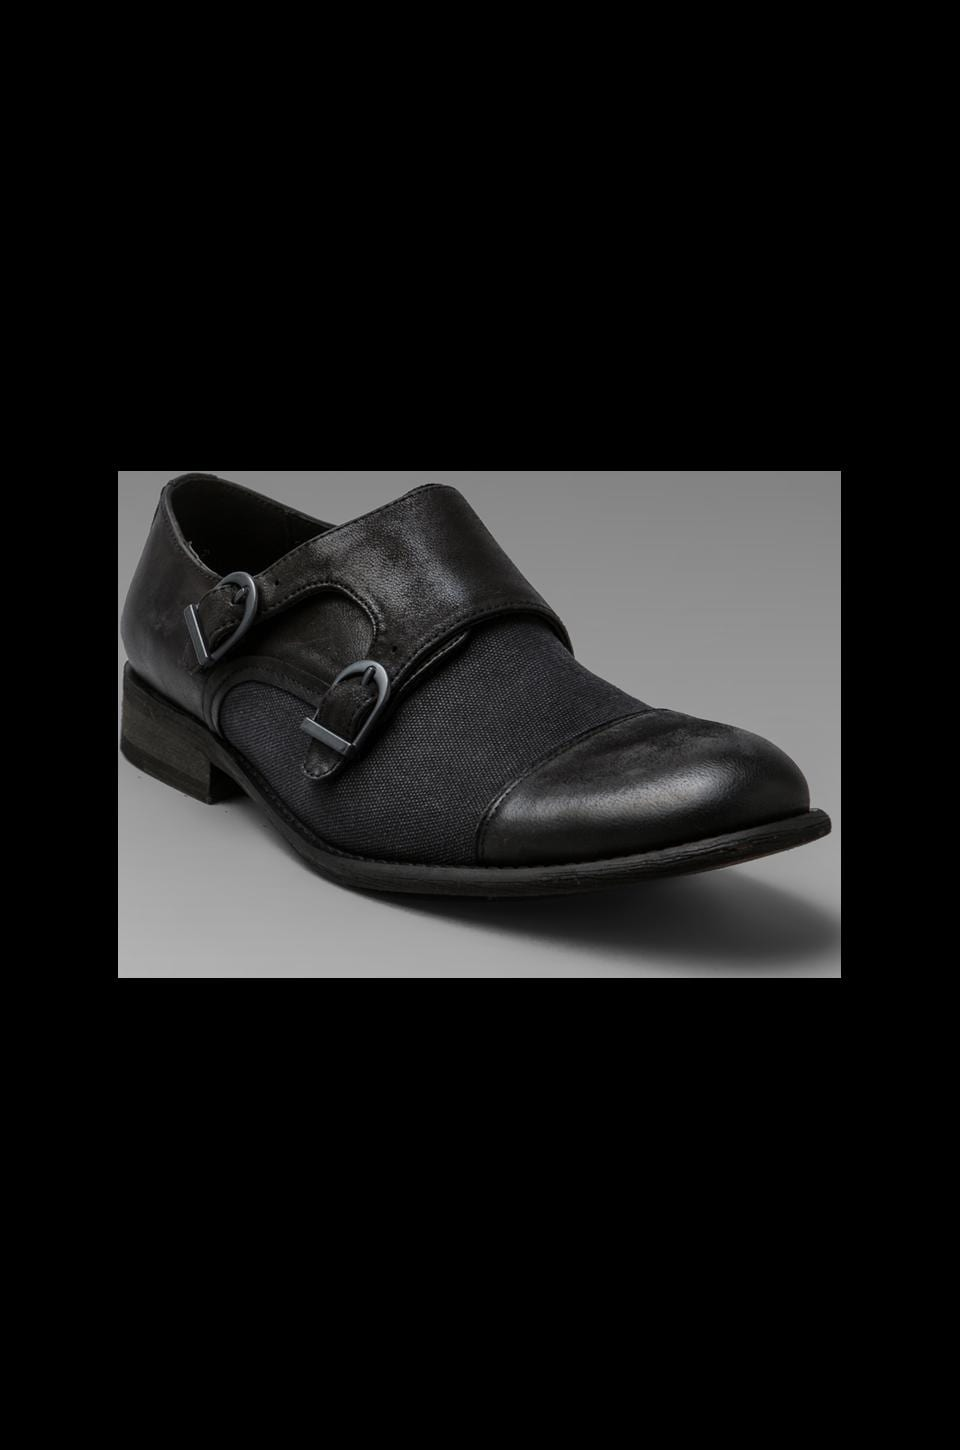 Rogue Double Trouble Double Monk Strap in Black